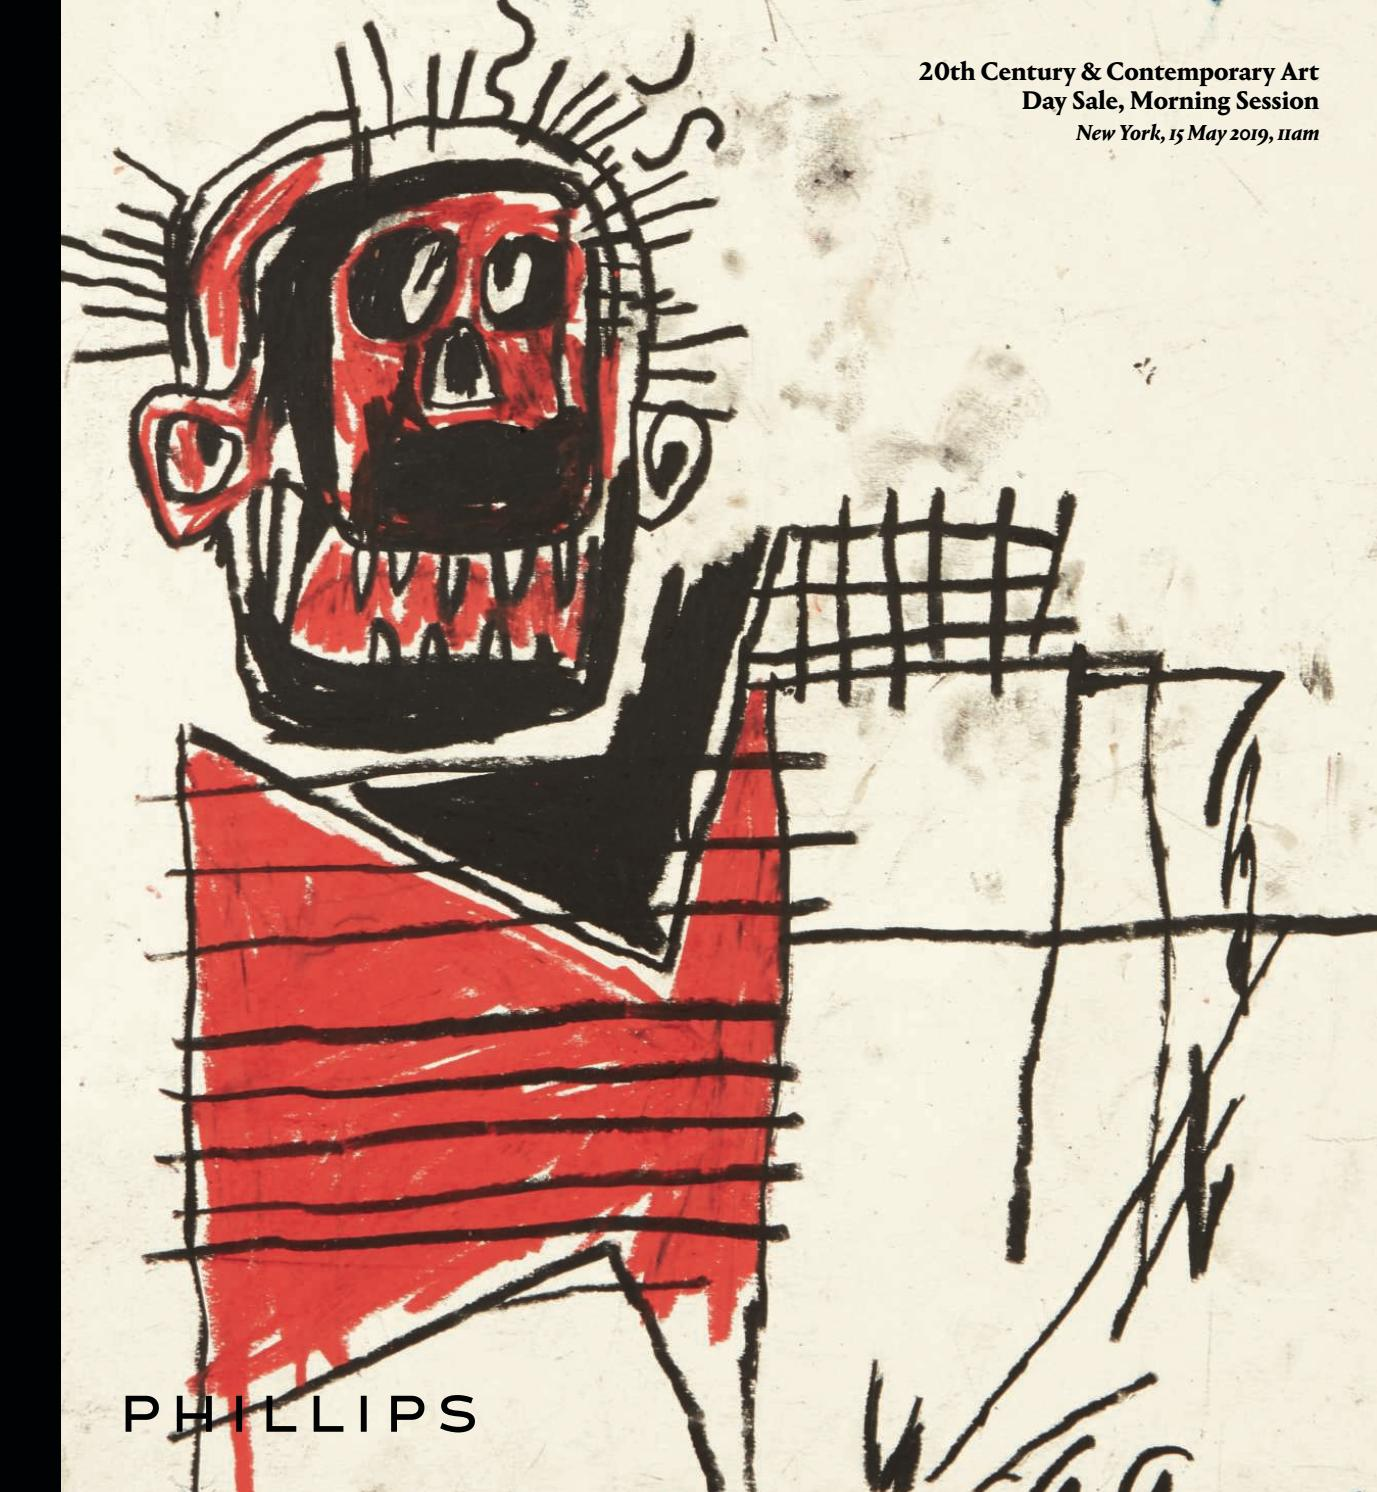 20th Century Contemporary Art Day Sale Morning Session Catalogue By Phillips Issuu